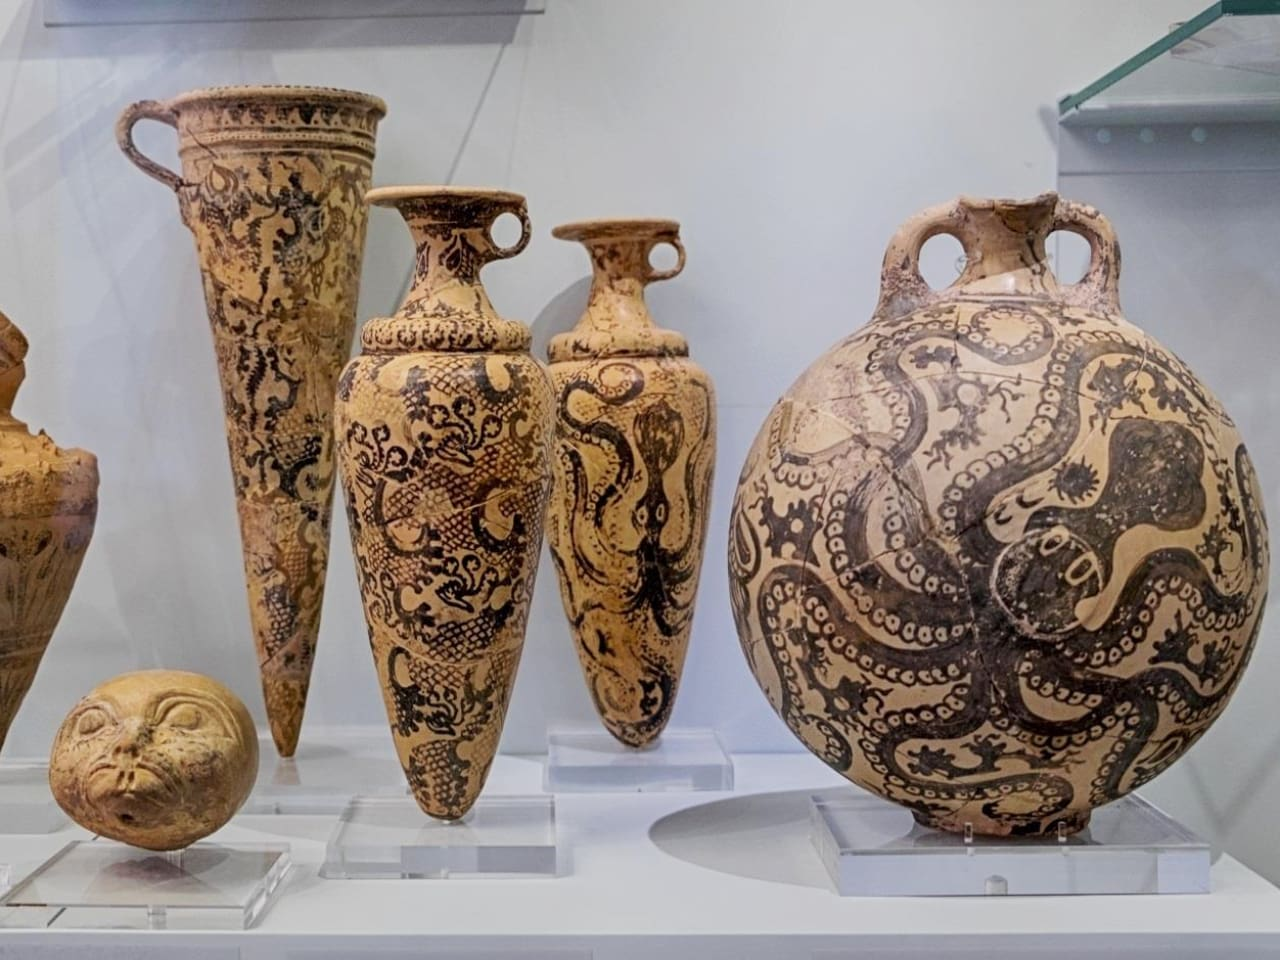 Archaeological_Museum_of_Heraklion_is_in_the_Top_3_museums